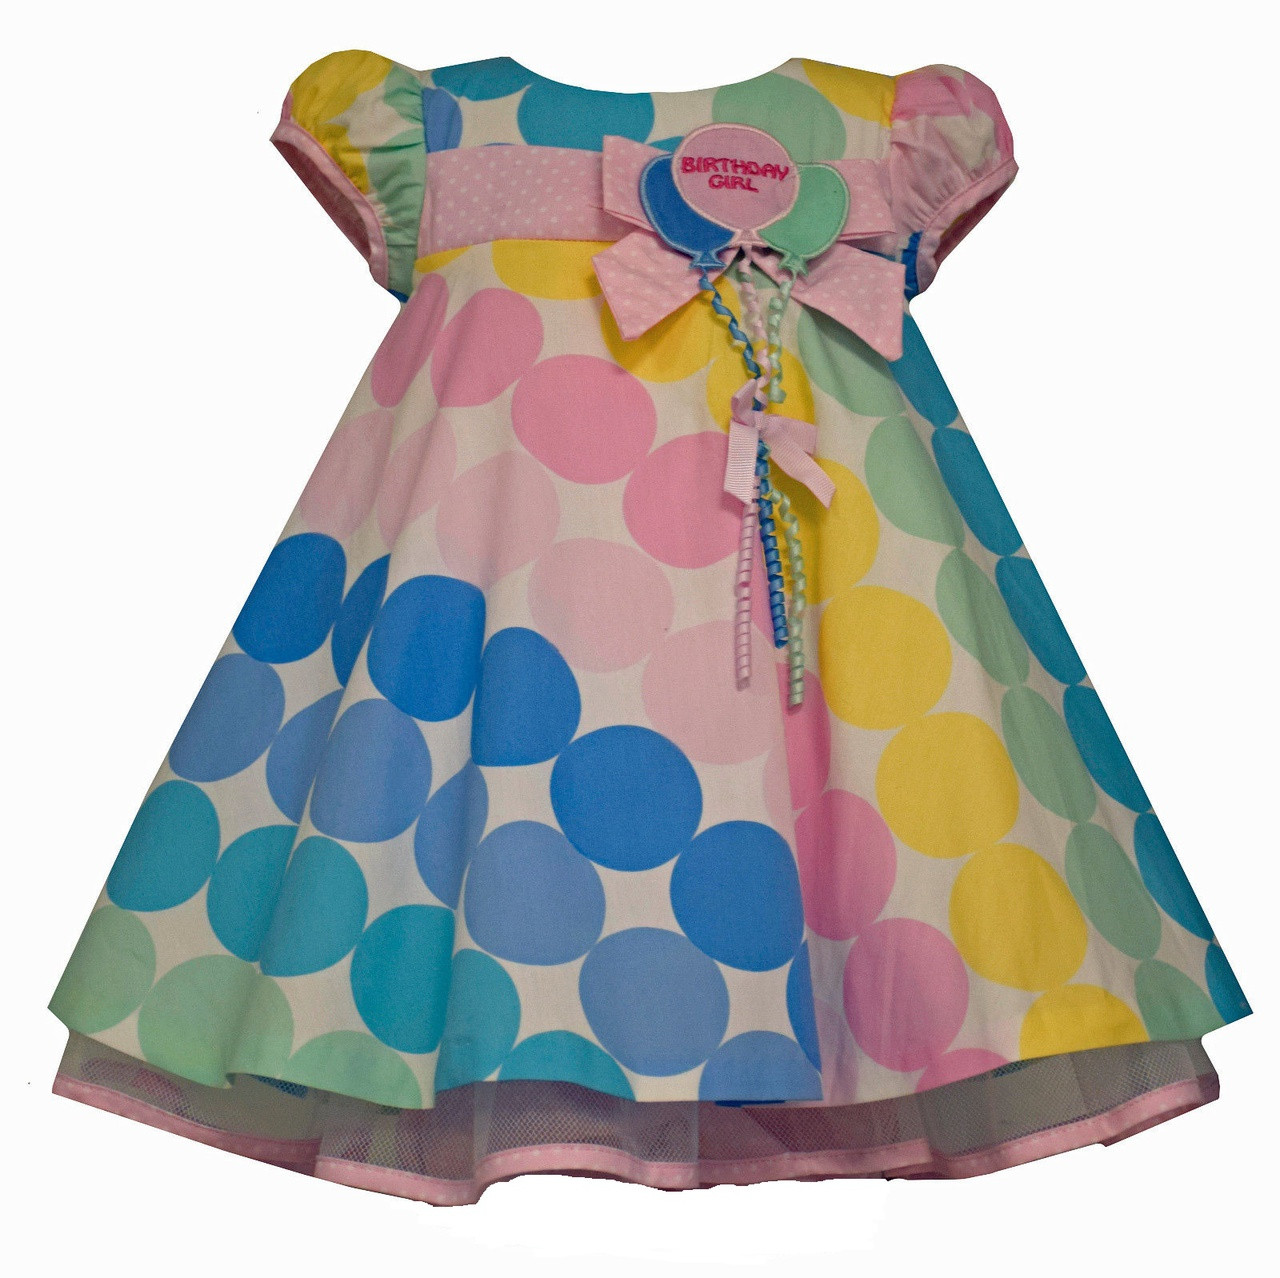 7a815721f635 Bonnie Jean Birthday Polka Dots Cupcake Girls dress